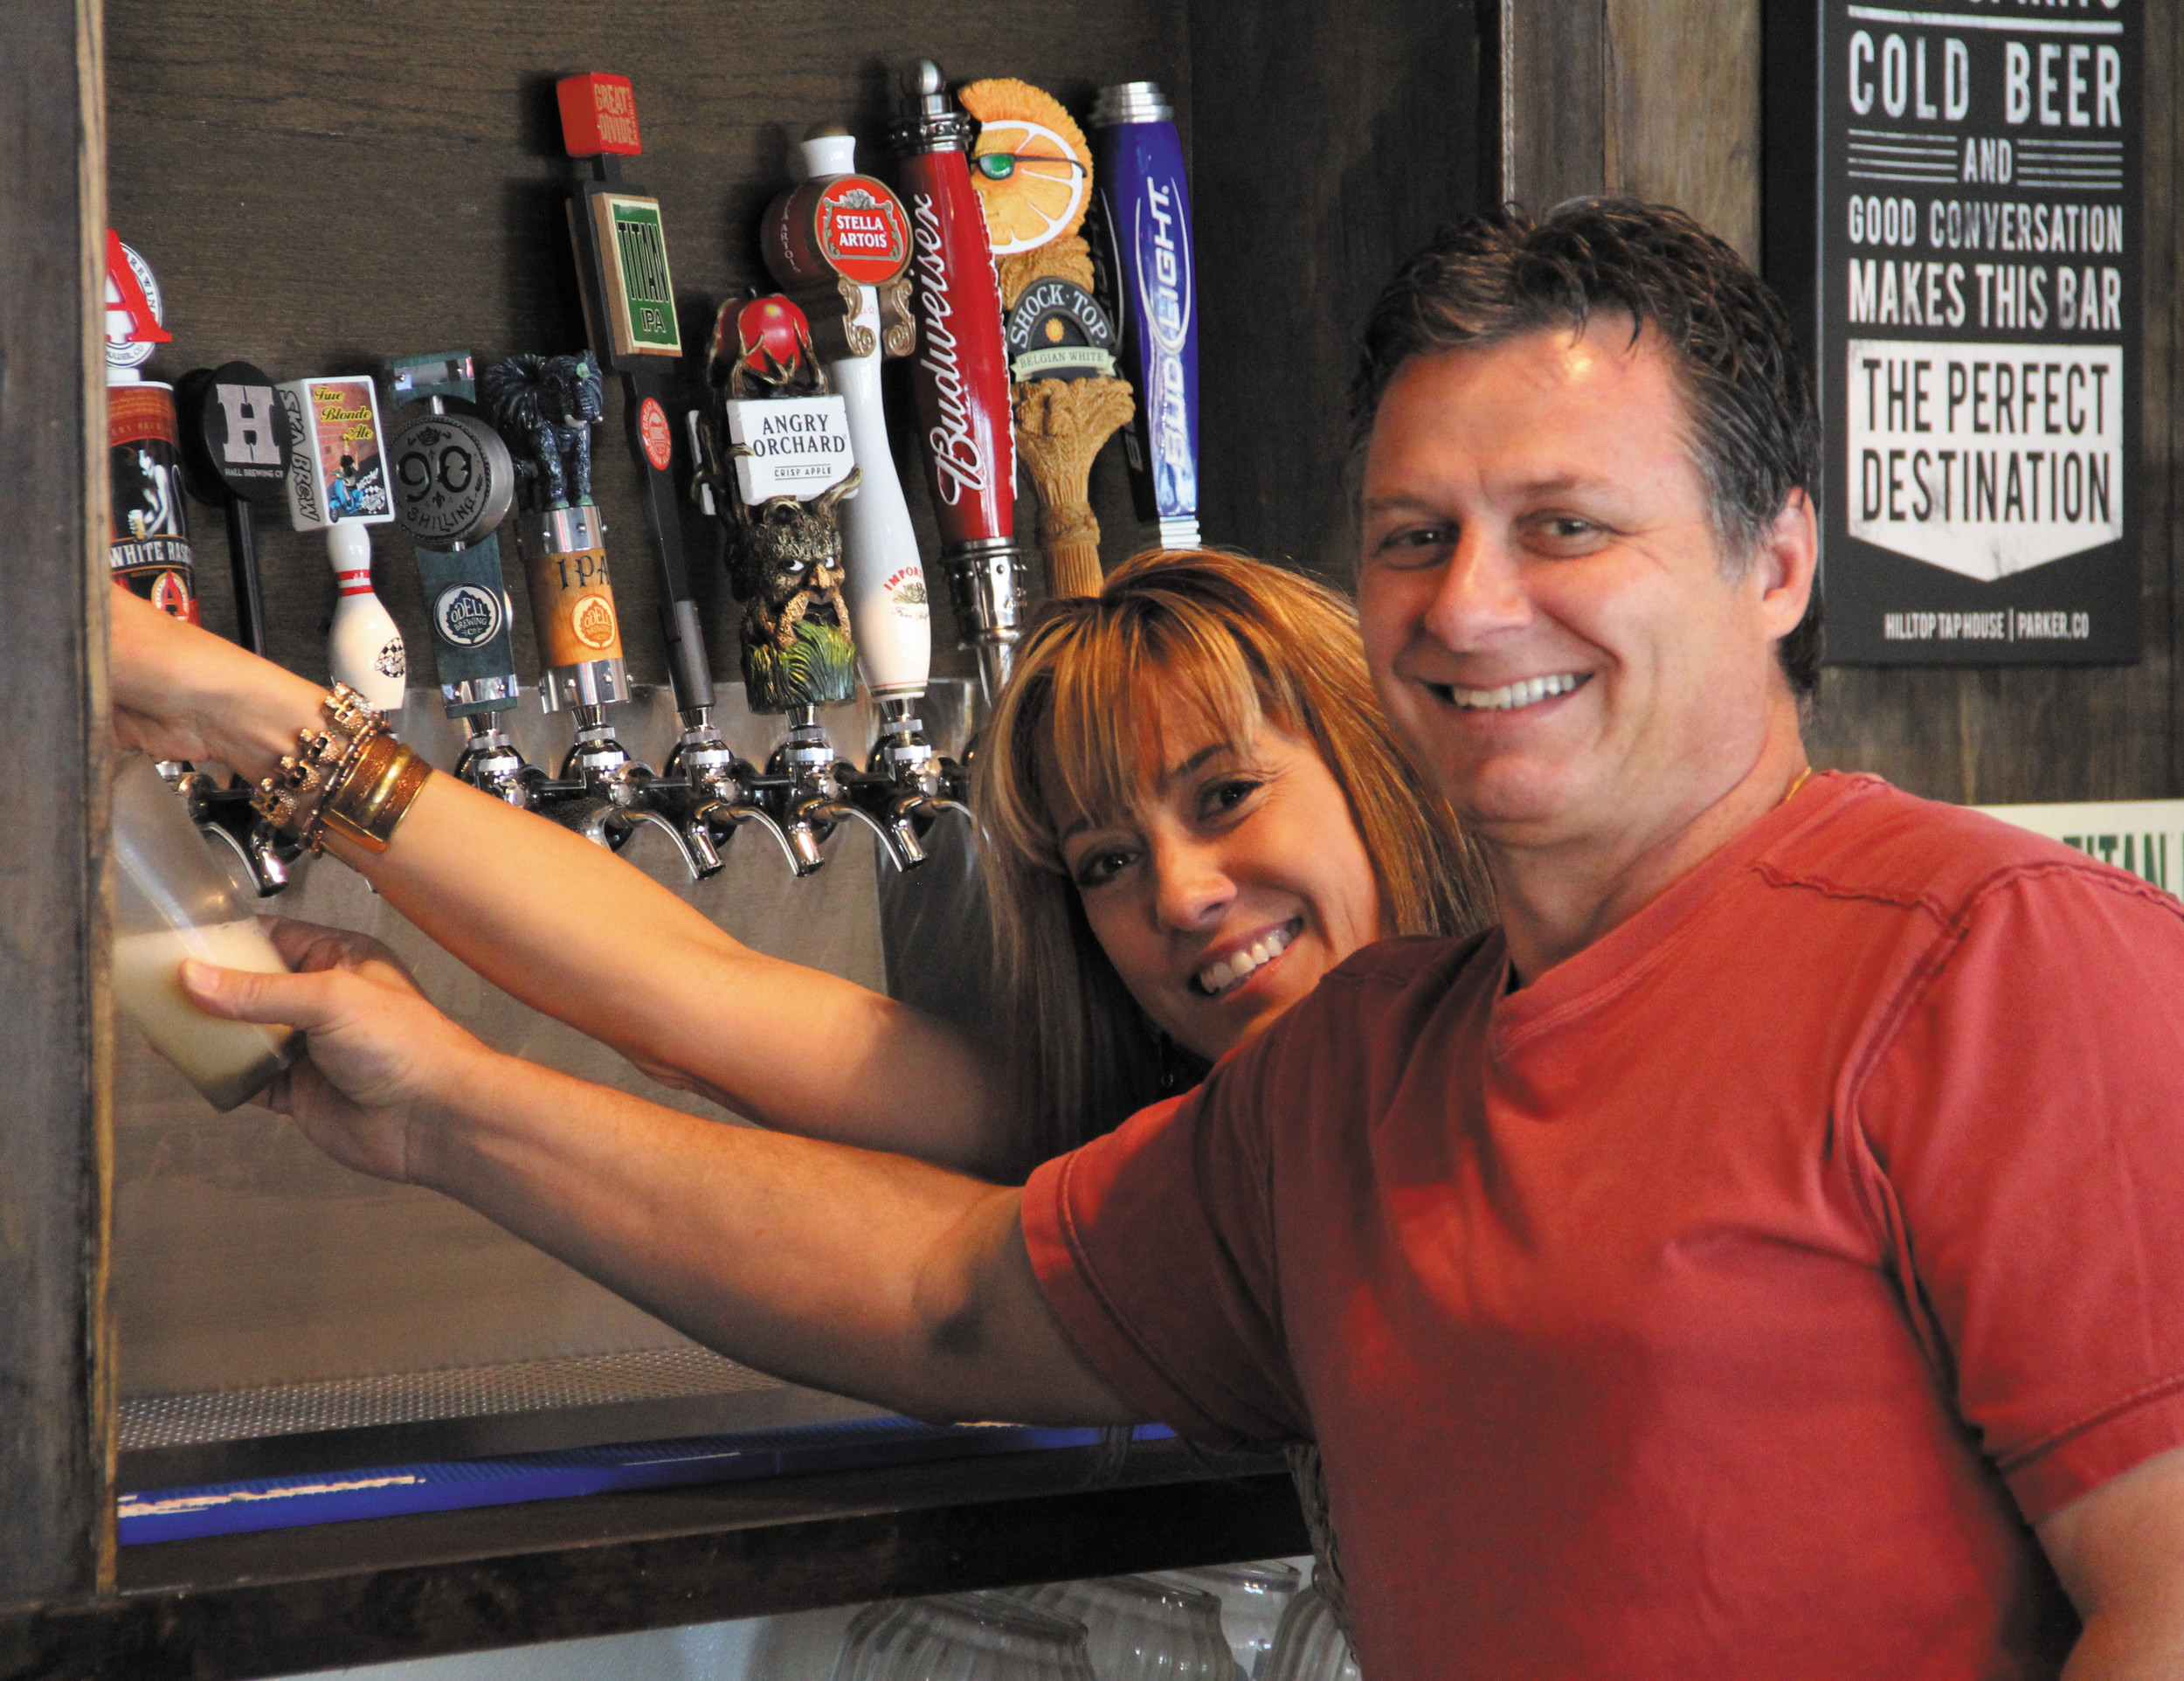 Hilltop Tap House owner Bill Psyllas and bartender Teresa Donahue pour a local brew July 7. The sports bar opened last month near Hilltop Road and Pine Drive.